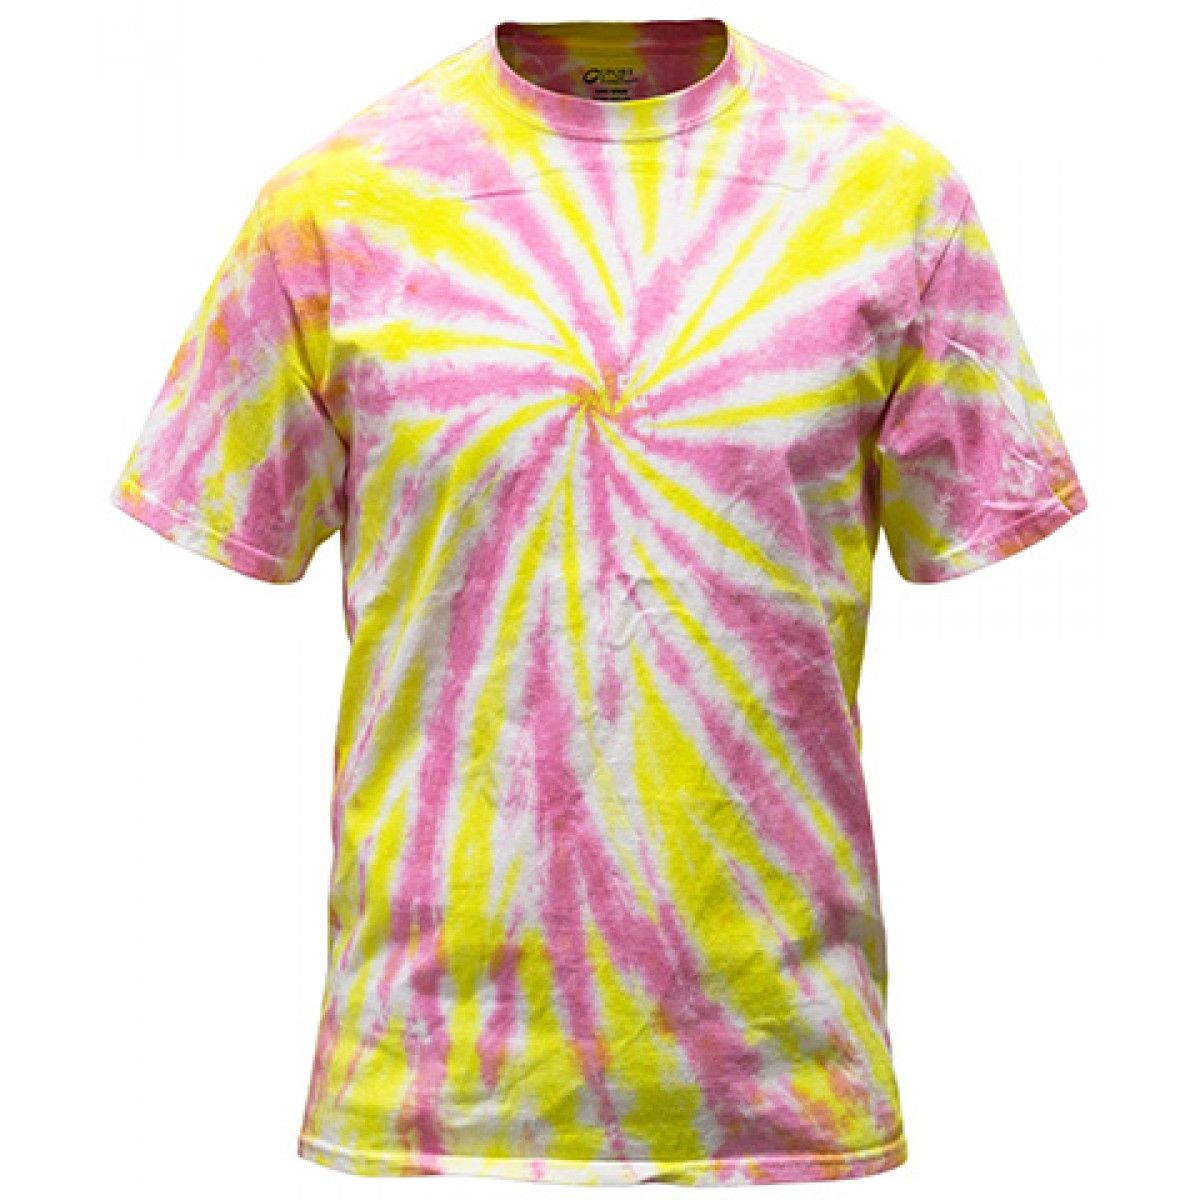 Multi-Color Tie-Dye Tee -Pink/Yellow-XL